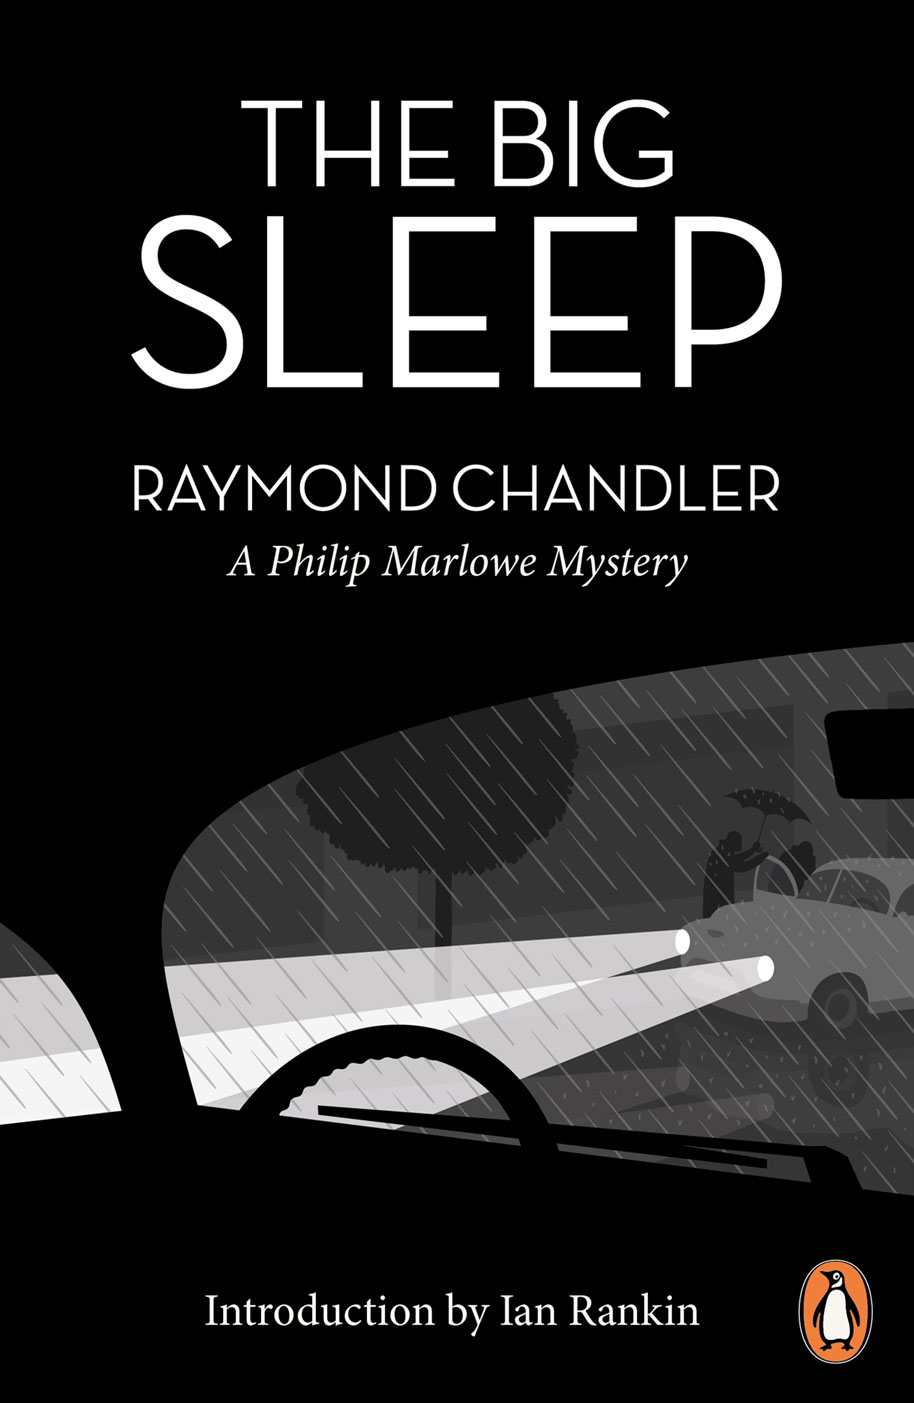 The Big Sleep book cover design by Jason Hibbs for the Penguin Design Awards